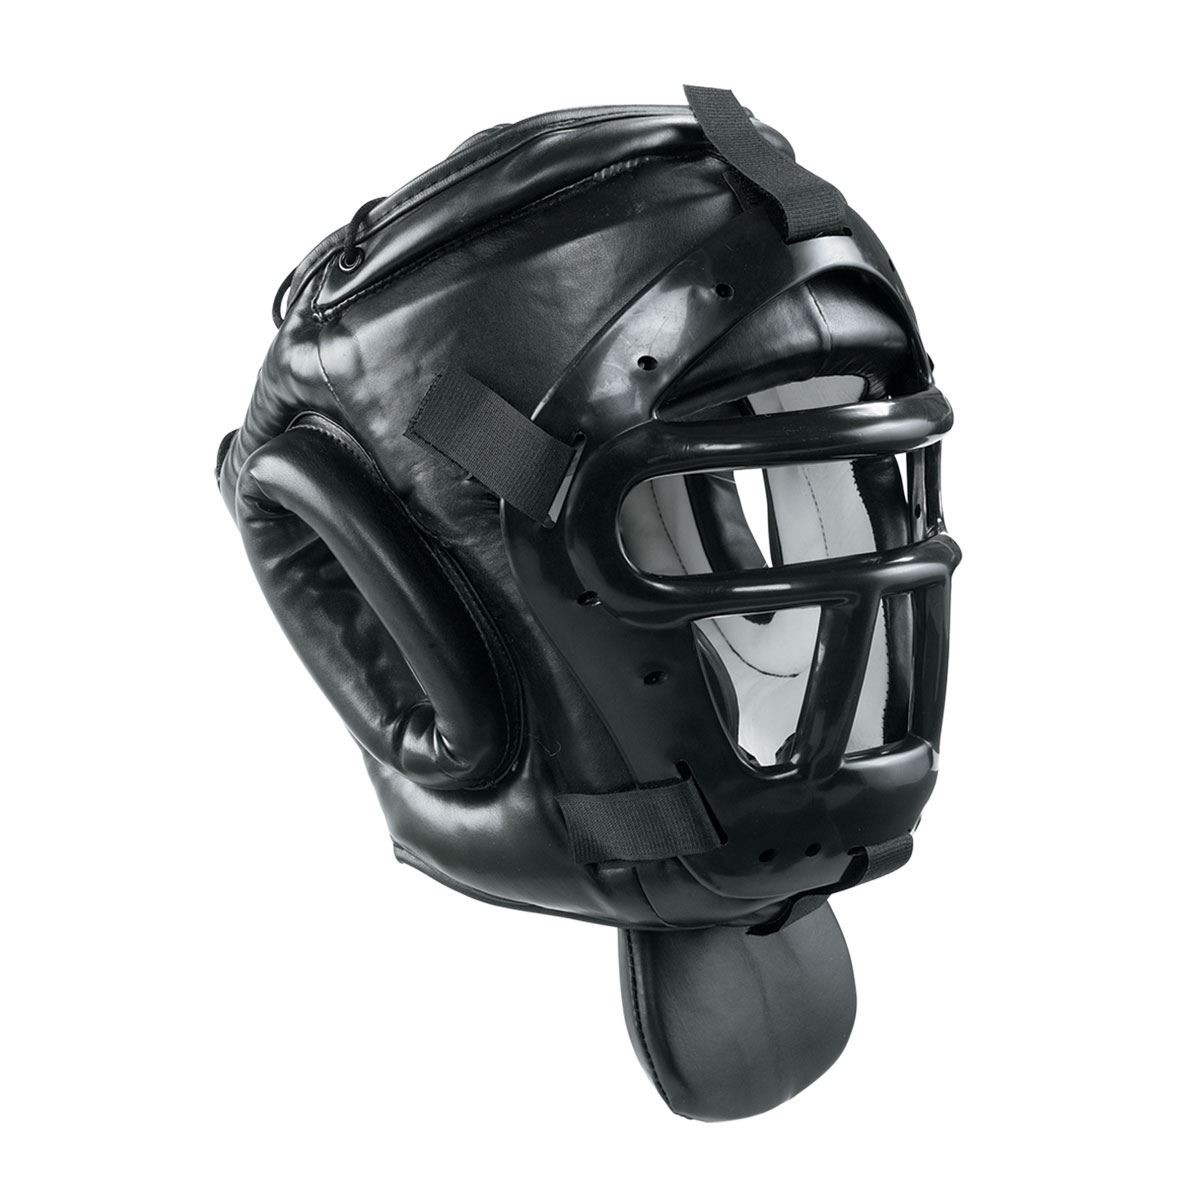 Padded Weapons Protective Headgear